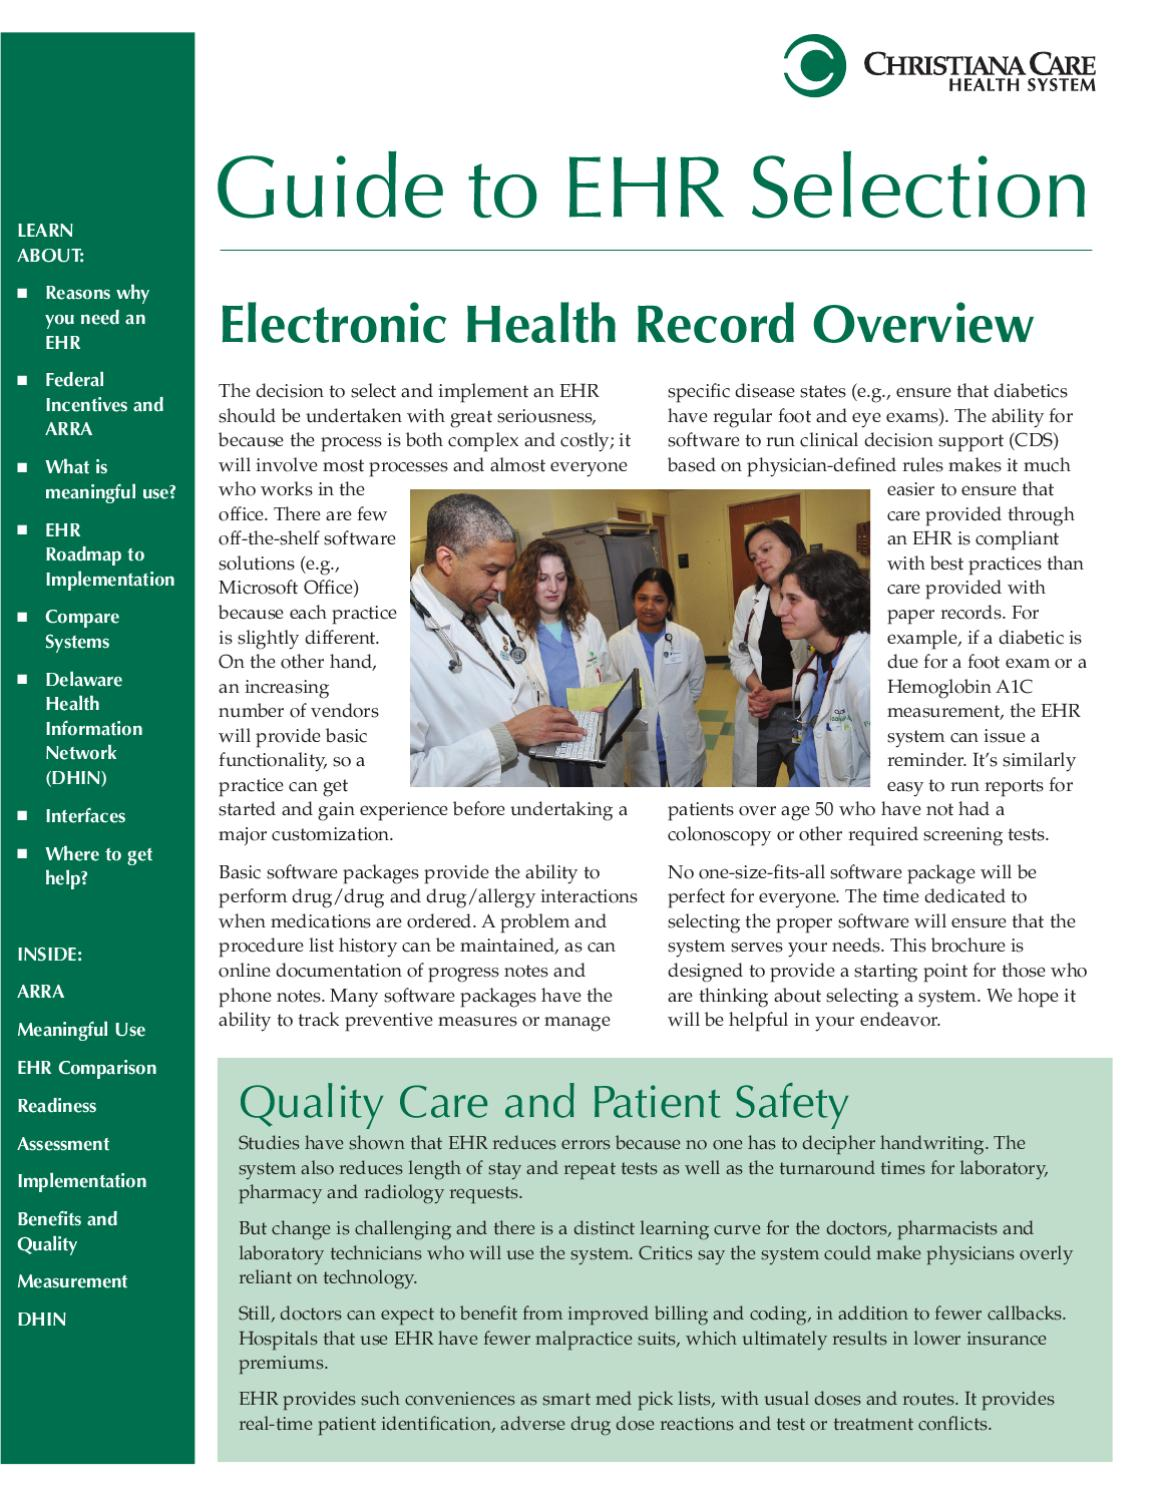 paper based versus electronic medical record keeping The security issues with paper medical records involve factors converting from paper to electronic records infographic on paper based medical records.